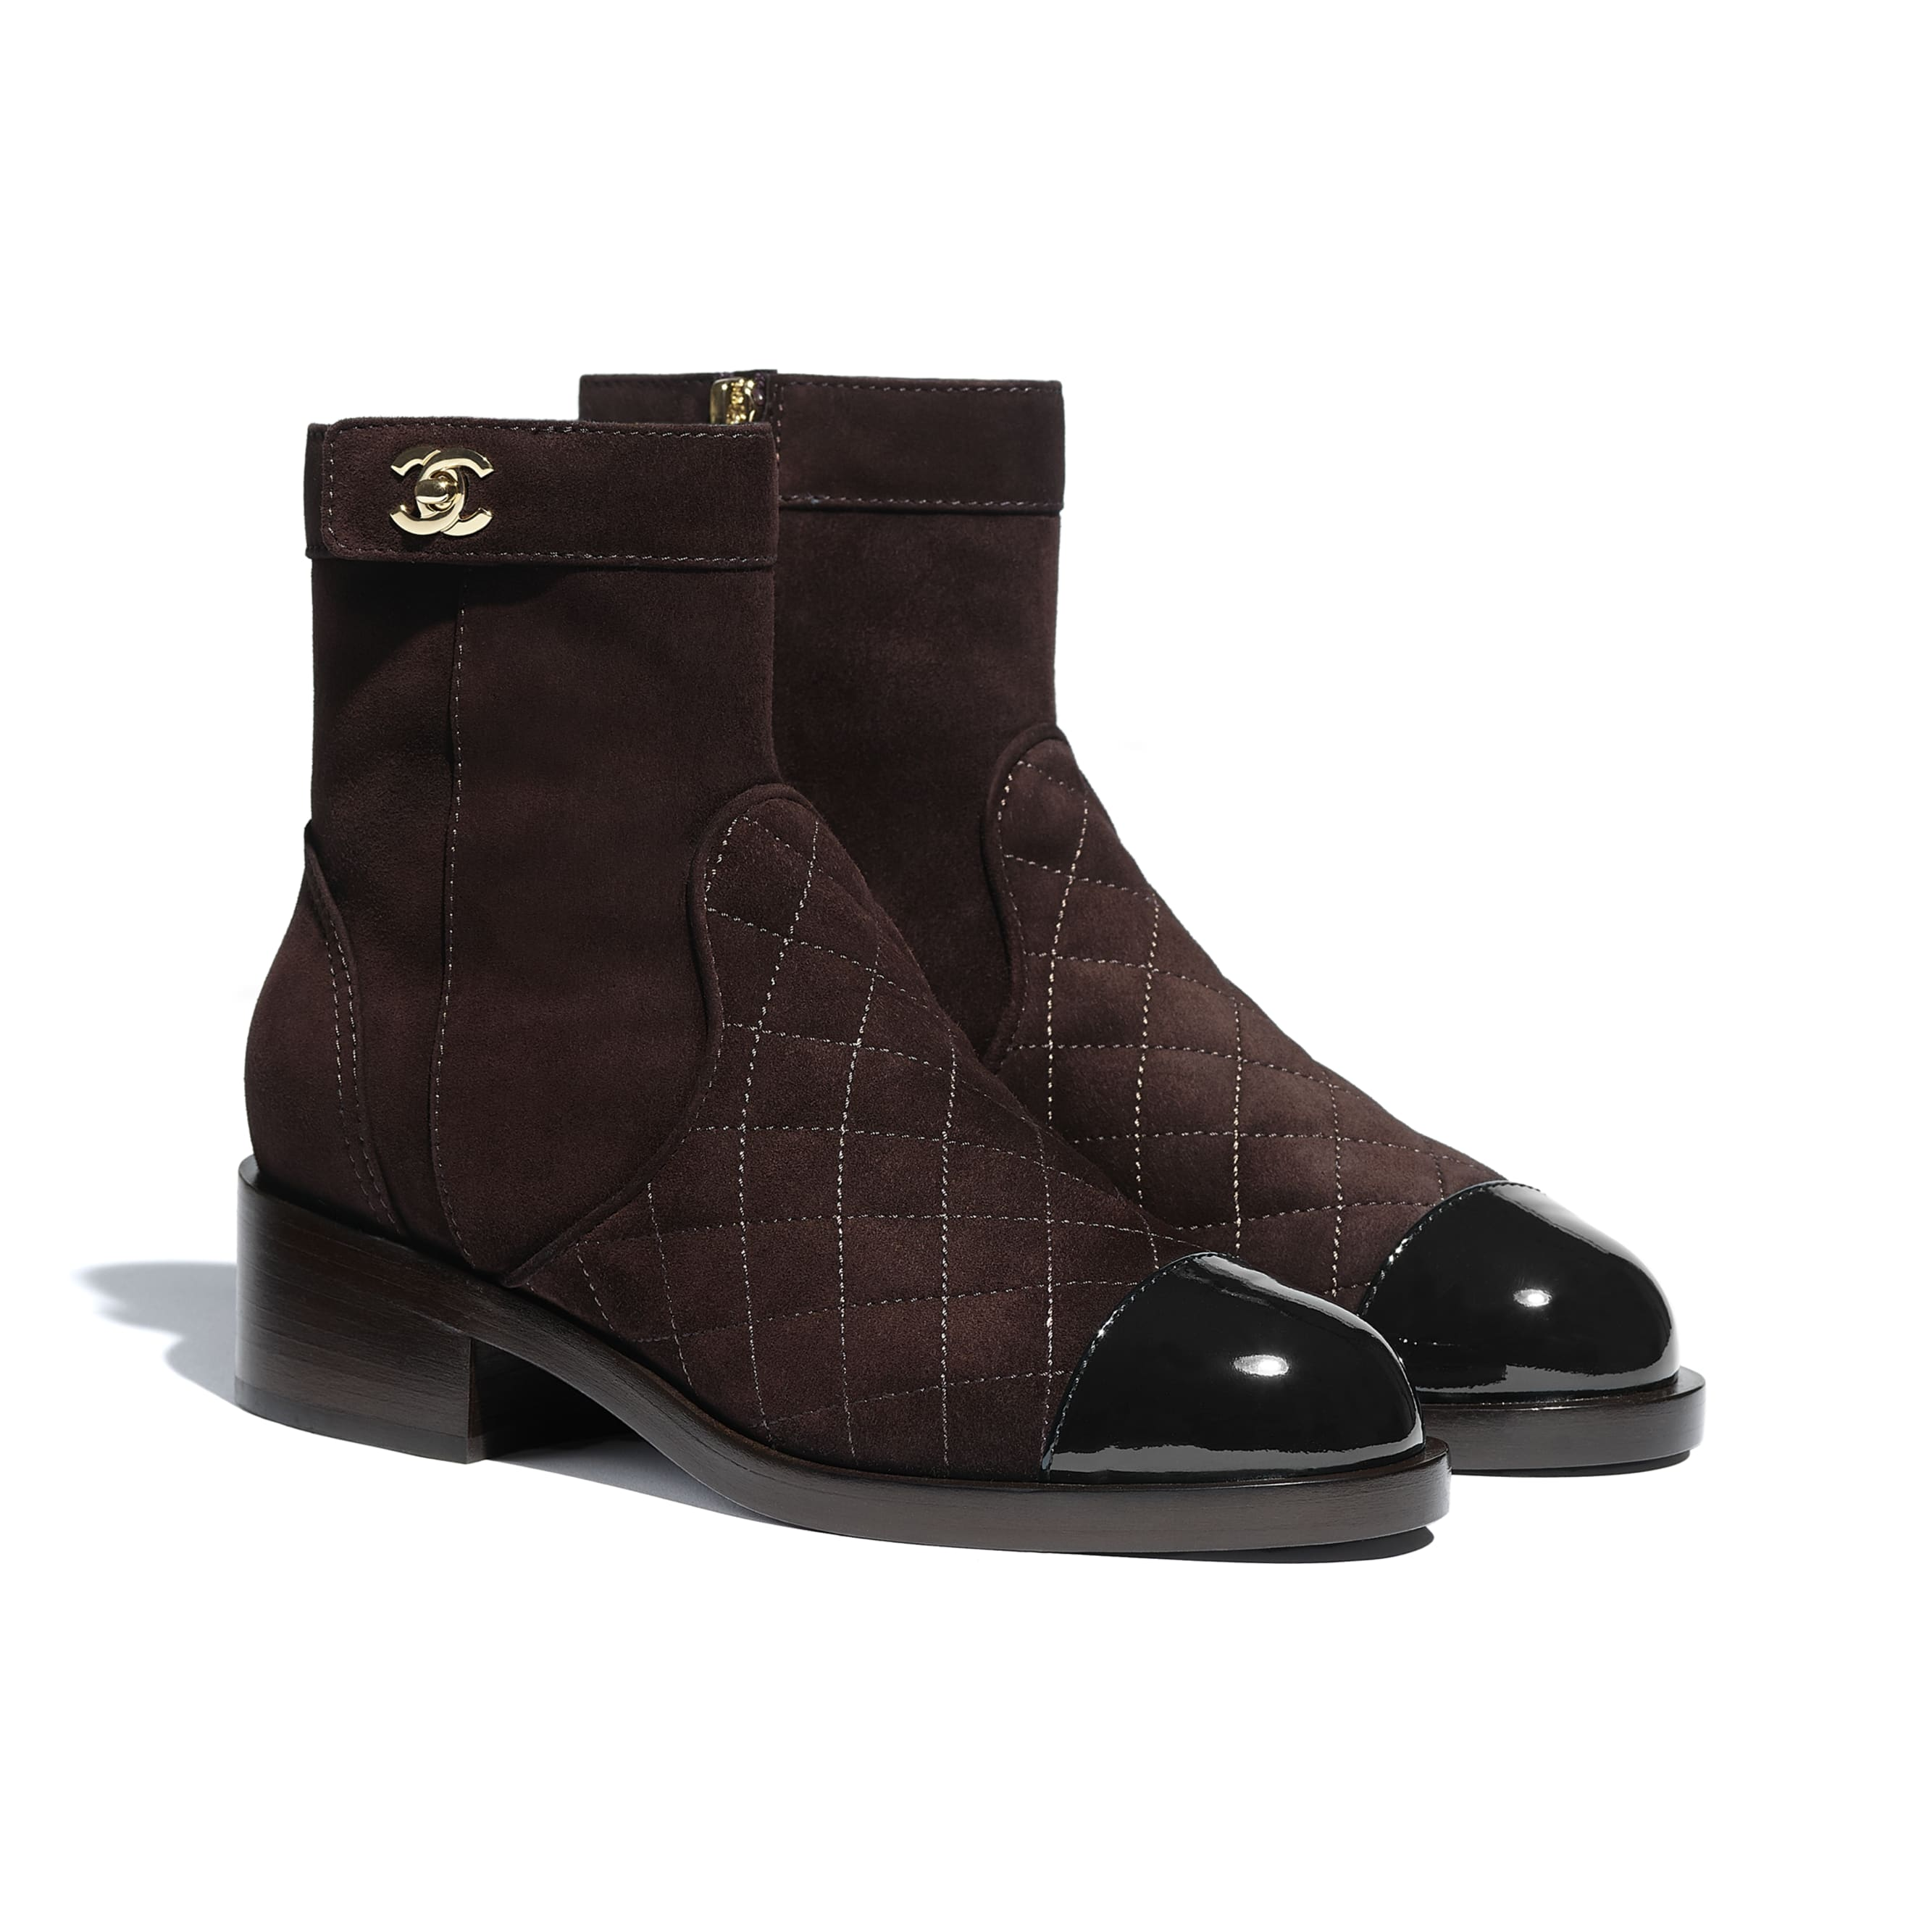 Ankle Boots - Brown & Black - Suede Calfskin & Patent Calfskin - CHANEL - Alternative view - see standard sized version